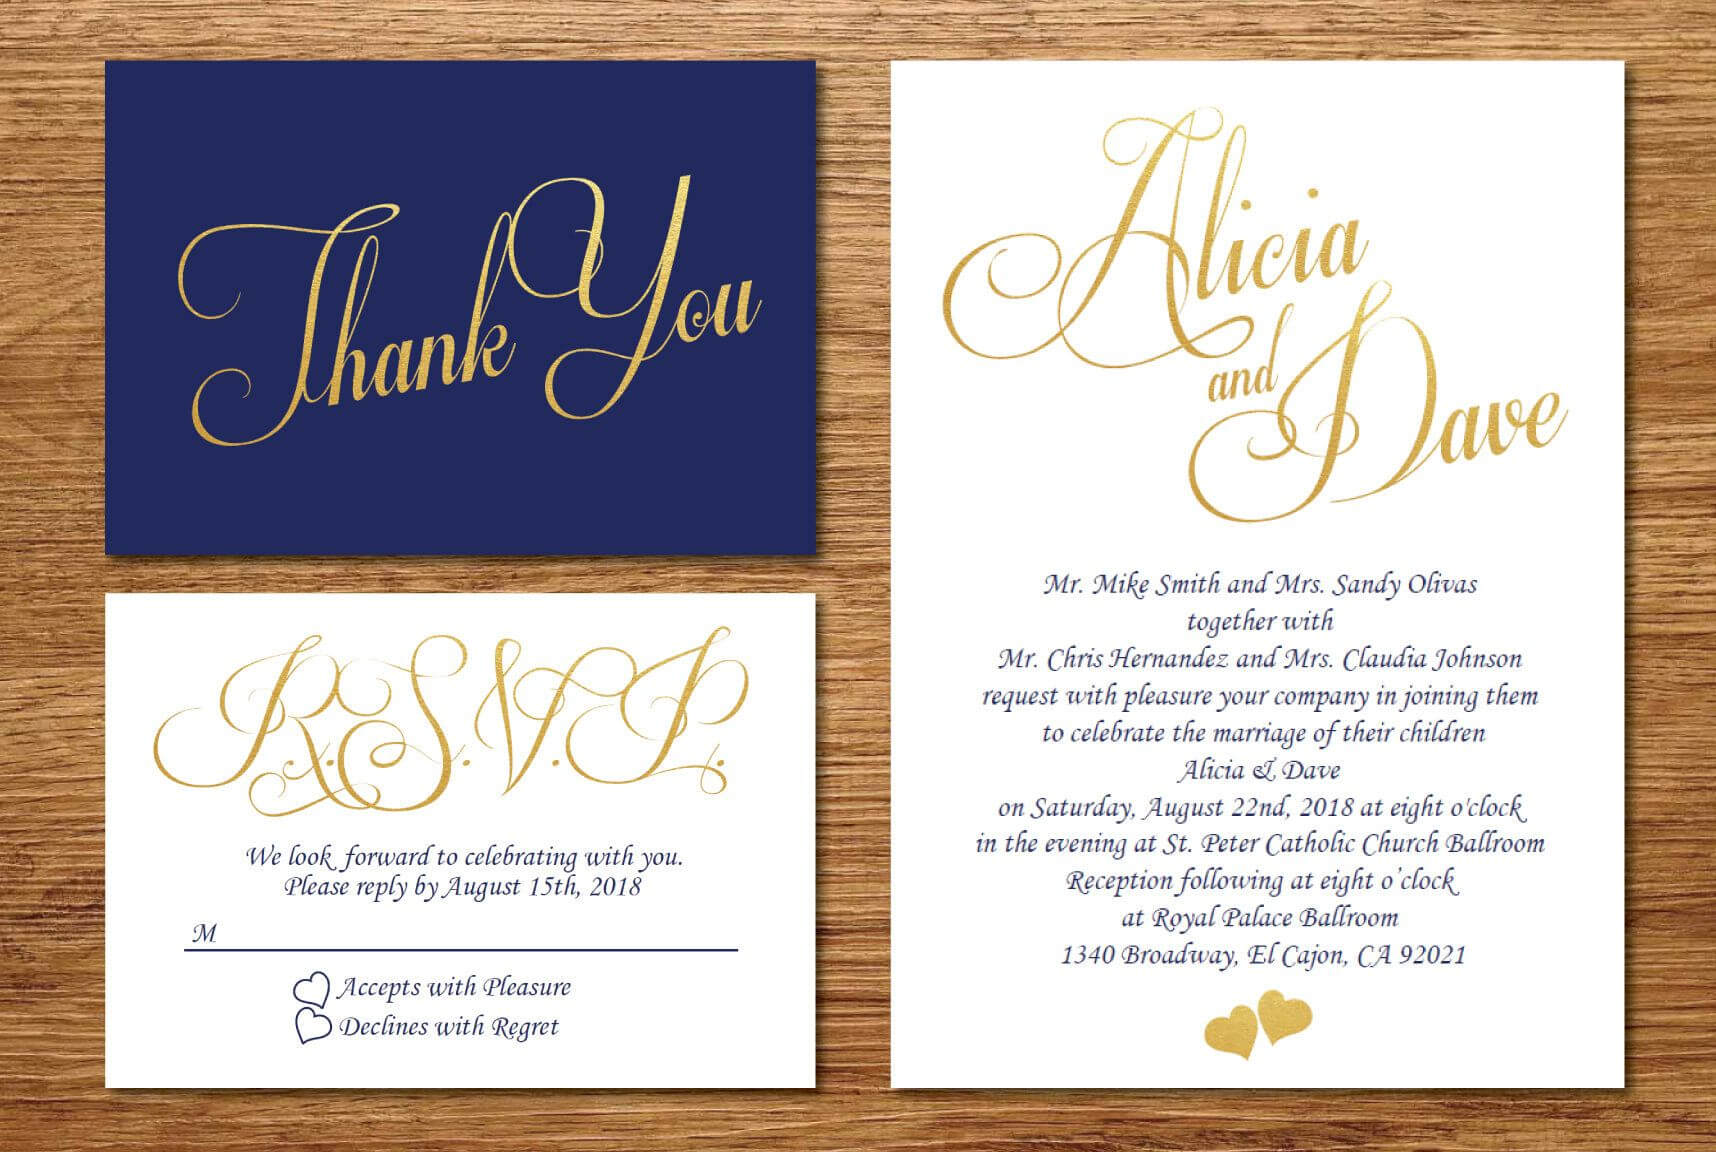 Printable Navy Blue And Gold Wedding Invitation/wedding inside Wedding Card Size Template